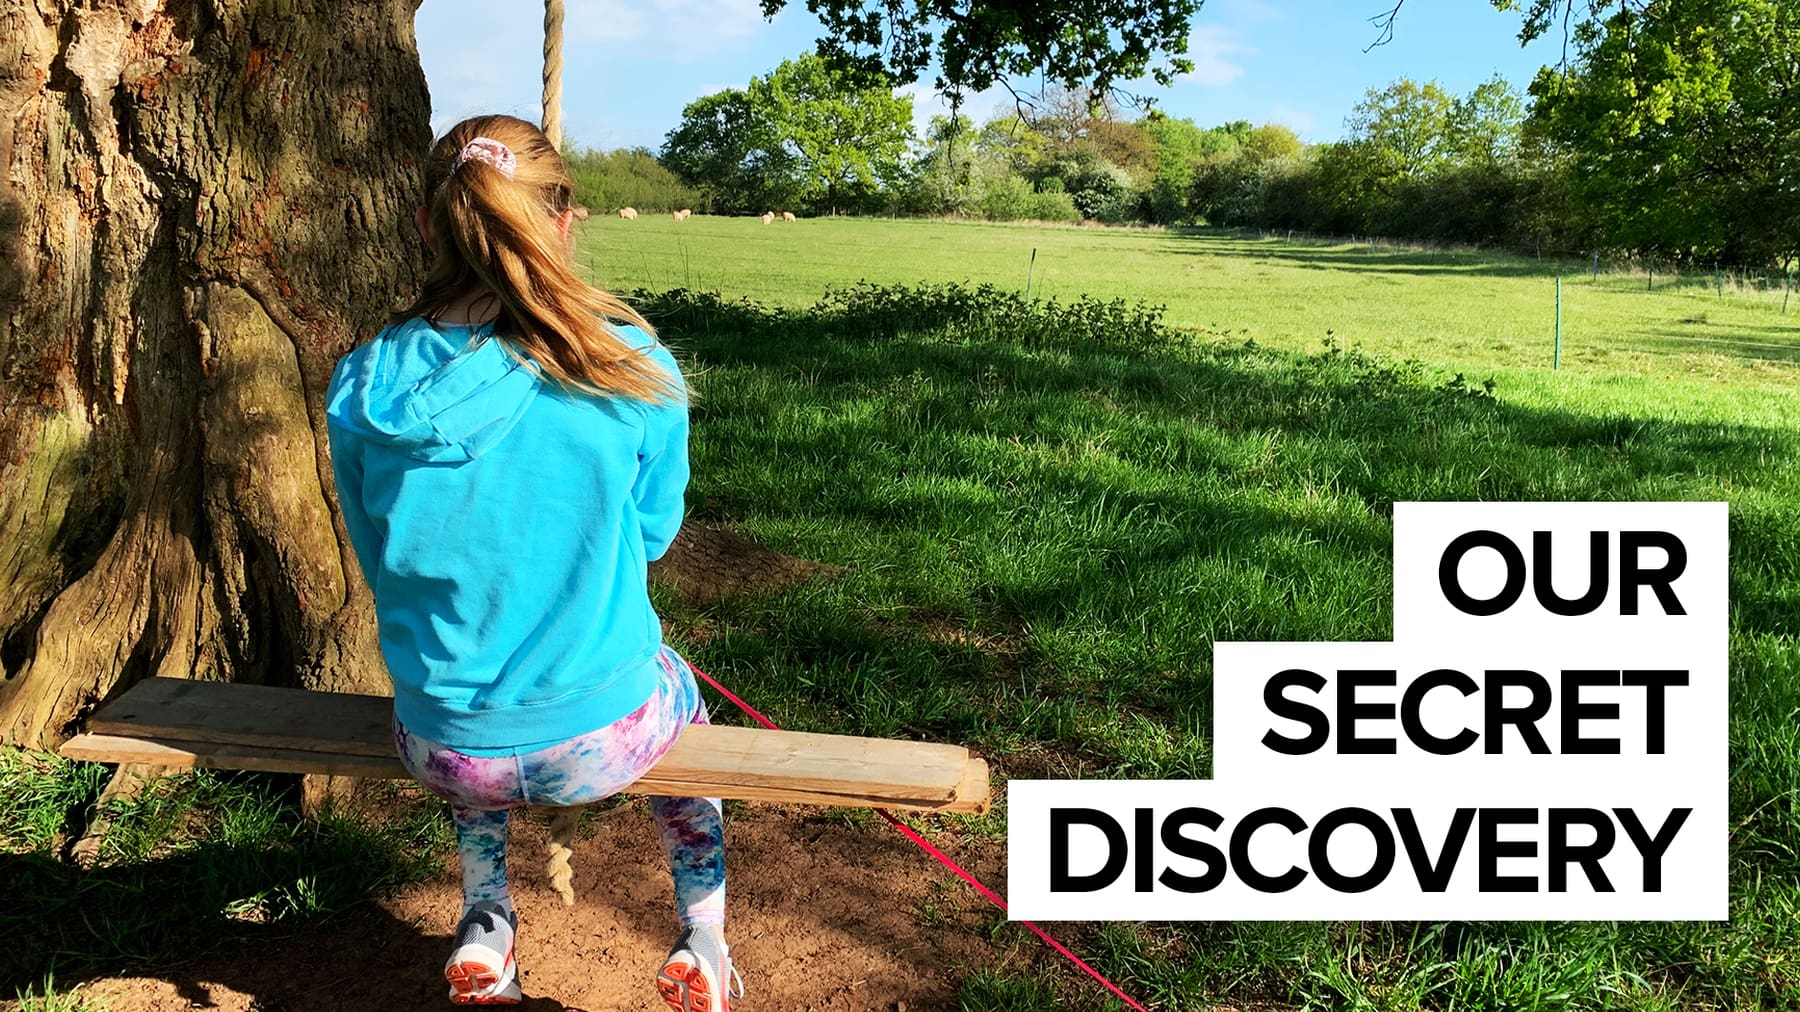 Our secret discovery…